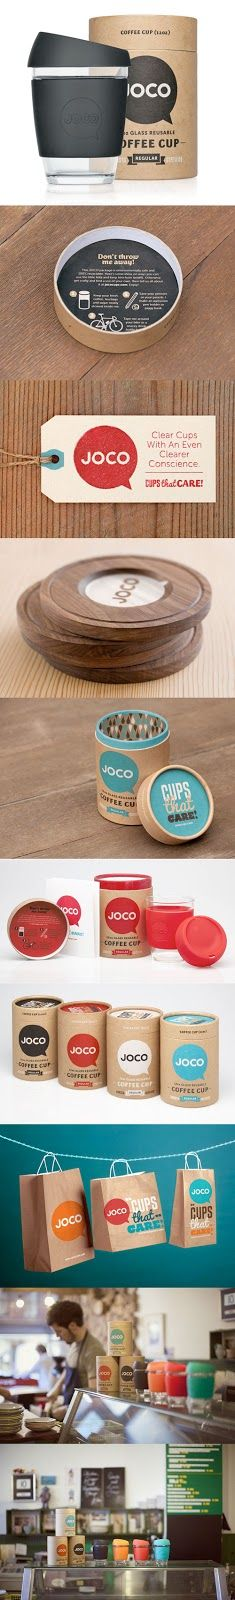 CUTE PACKAGING DESIGN  COFFEE BRANDING DESIGN  JOCO COFFEE CUP DESIGN BY JIMMY GLEESON